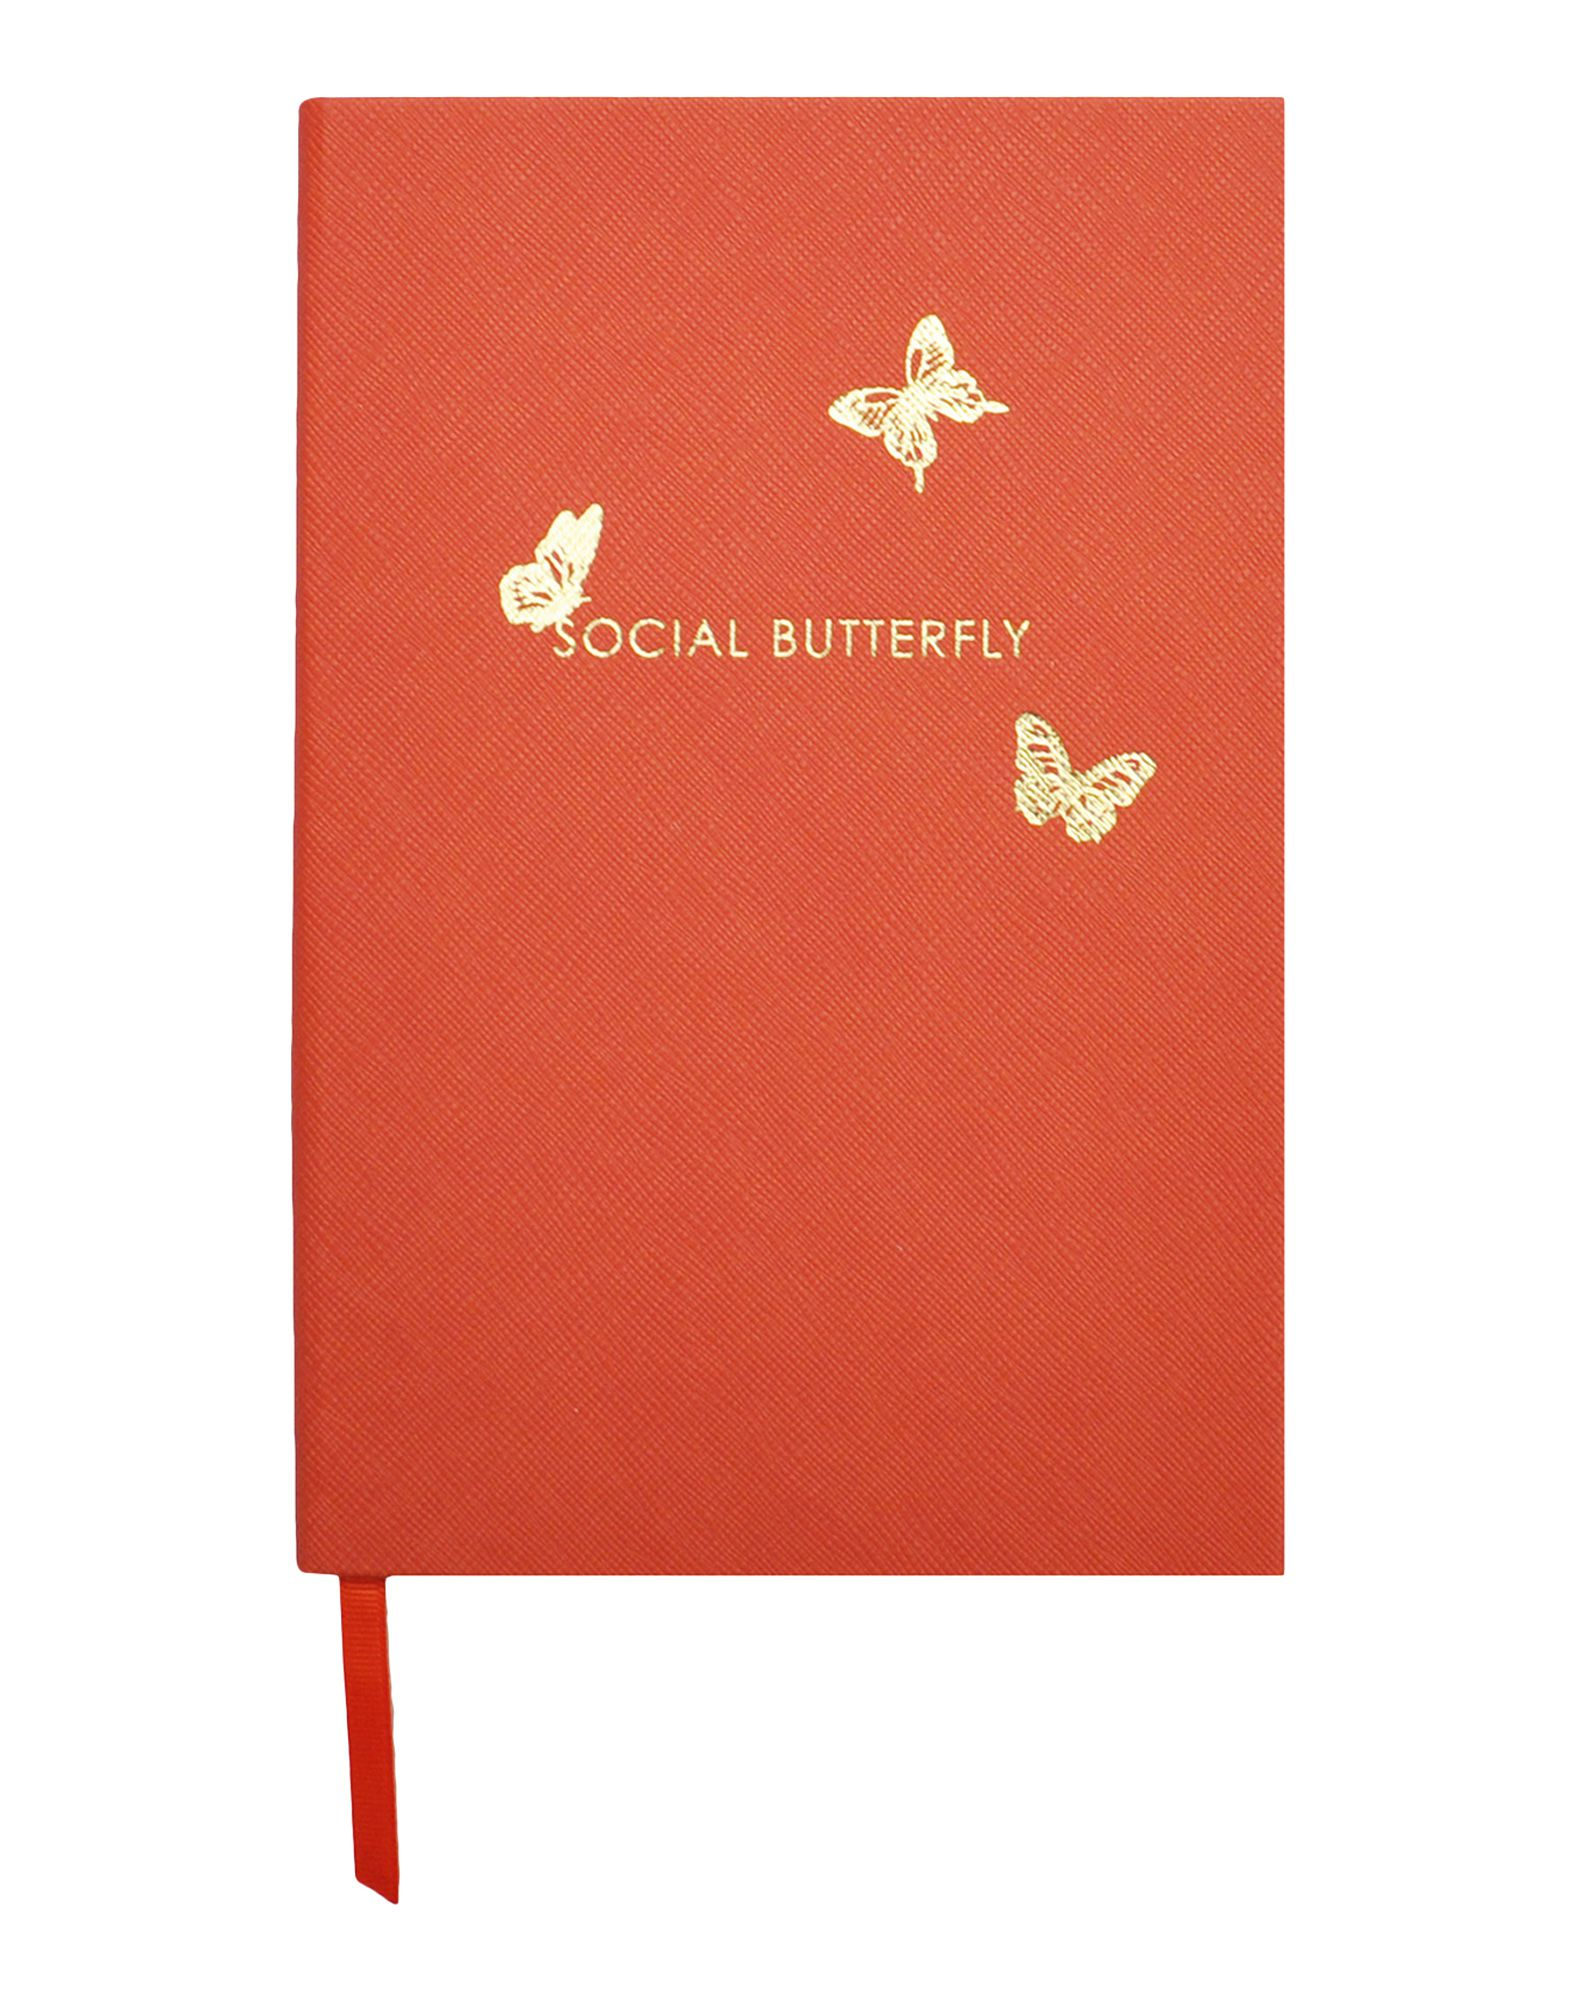 SLOANE STATIONERY Notebooks  Item 56002394 1